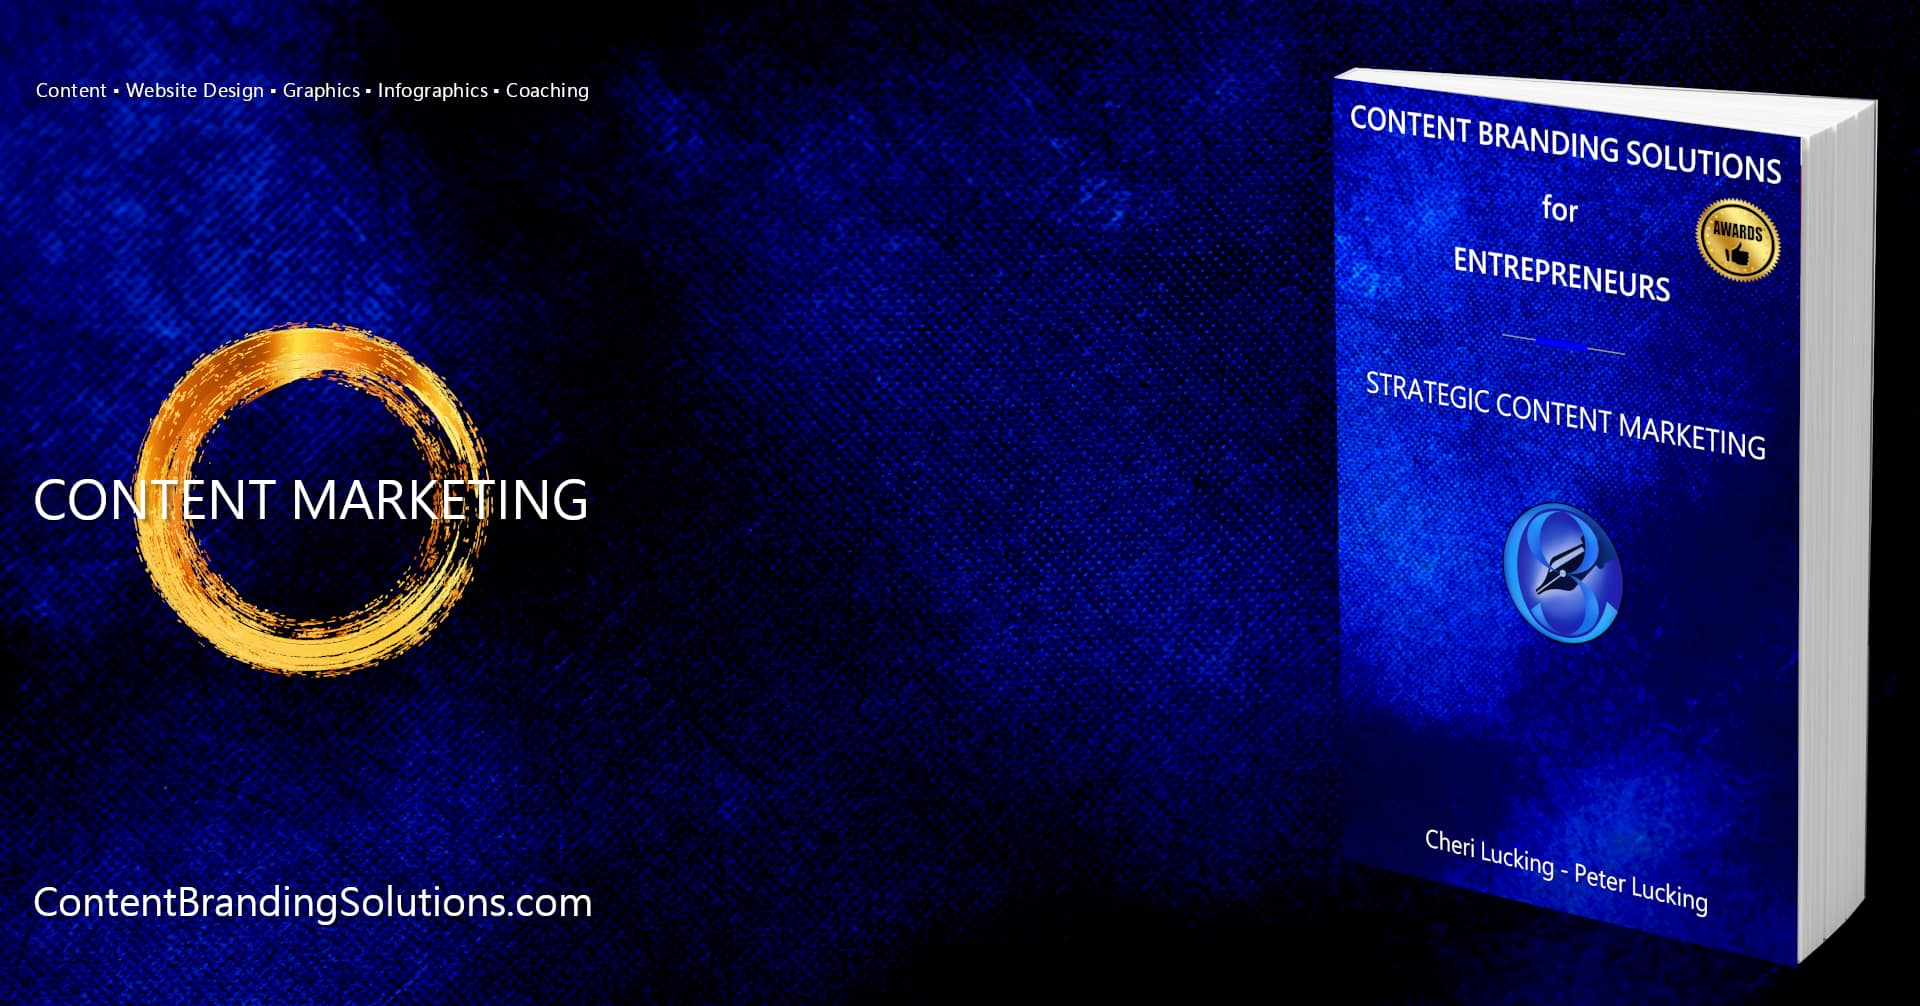 A new book on Content Branding and marketing